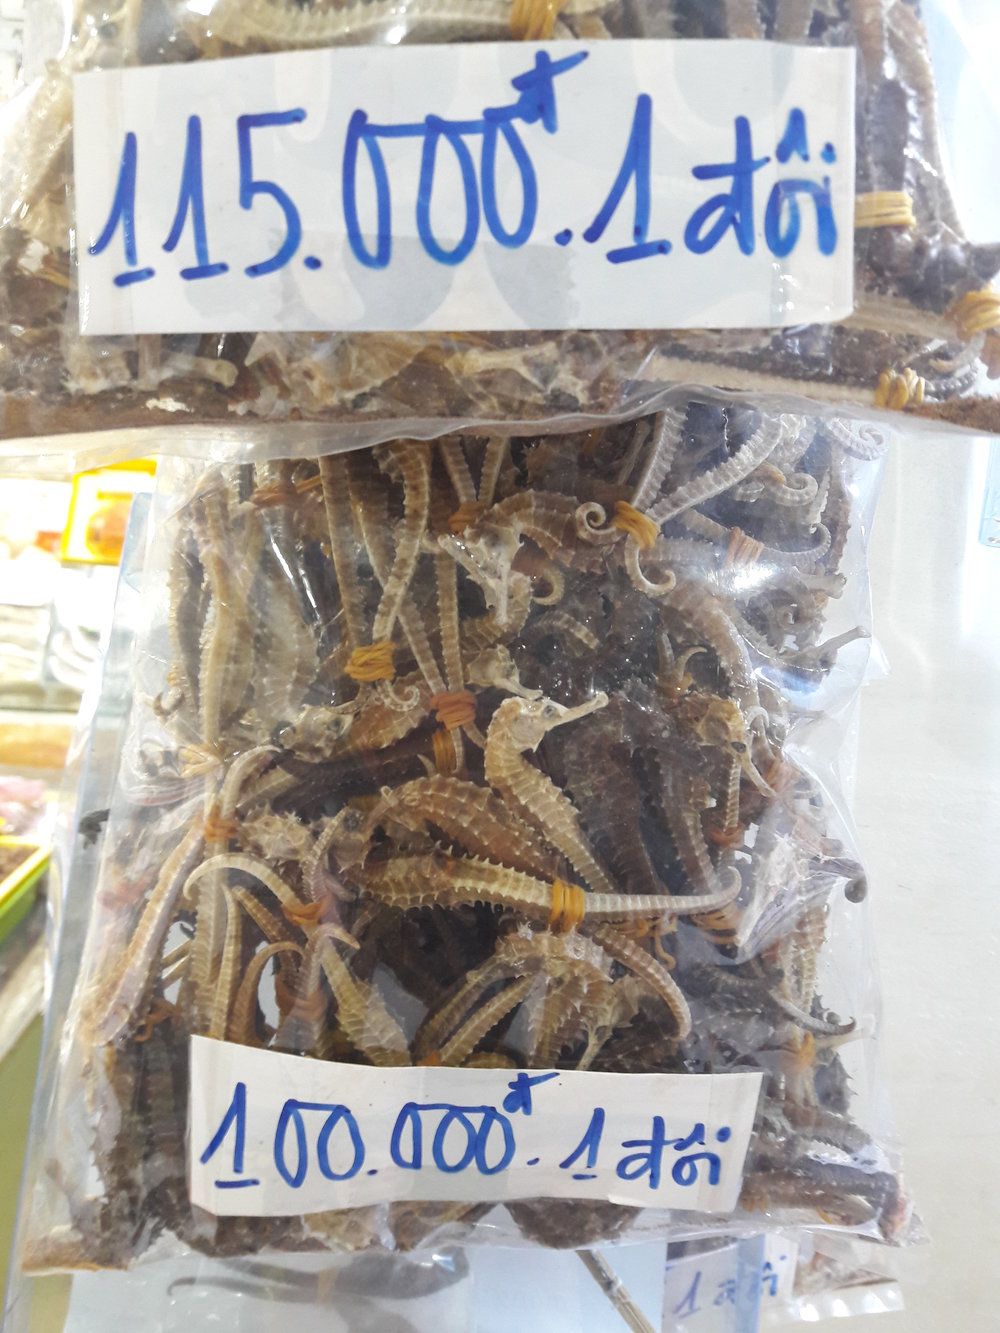 Bags of seahorses being sold at the market in Nha Trang, Khanh Hoa Province. Sold dry, a kilogram of seahorses will fetch over $1100 Canadian Dollars. The ones pictured here are being sold as pairs for $6, depending on size.  Photo by Do Huu Hoang.